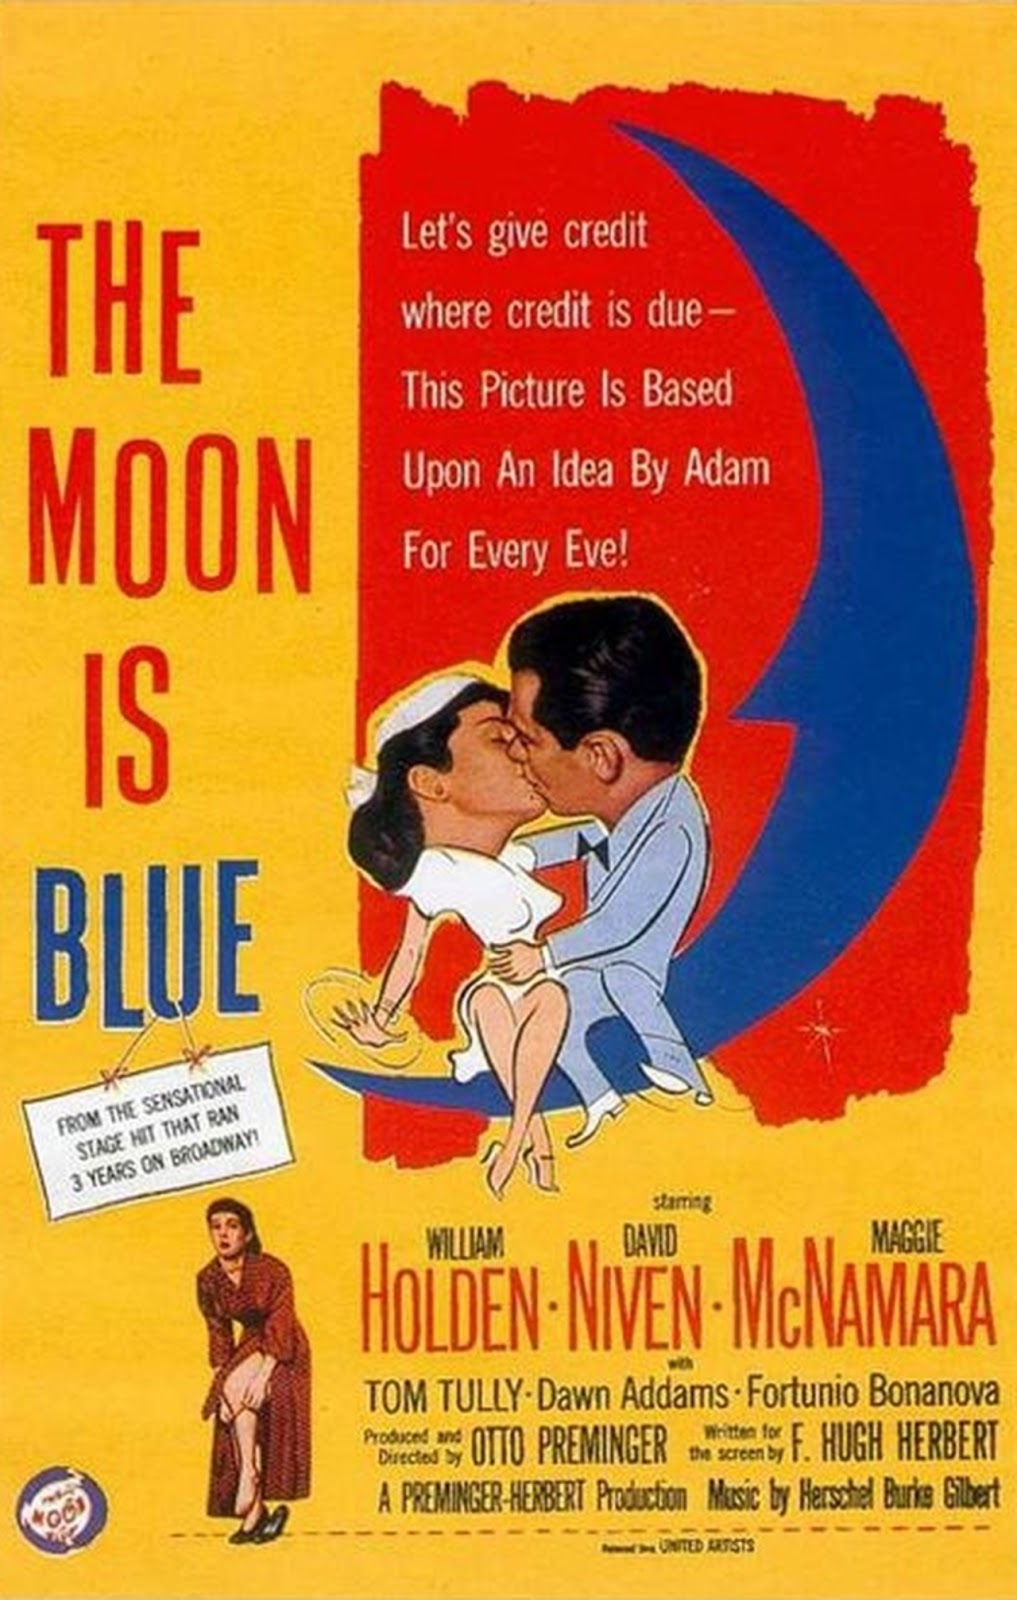 the moon is blue - 666×1048